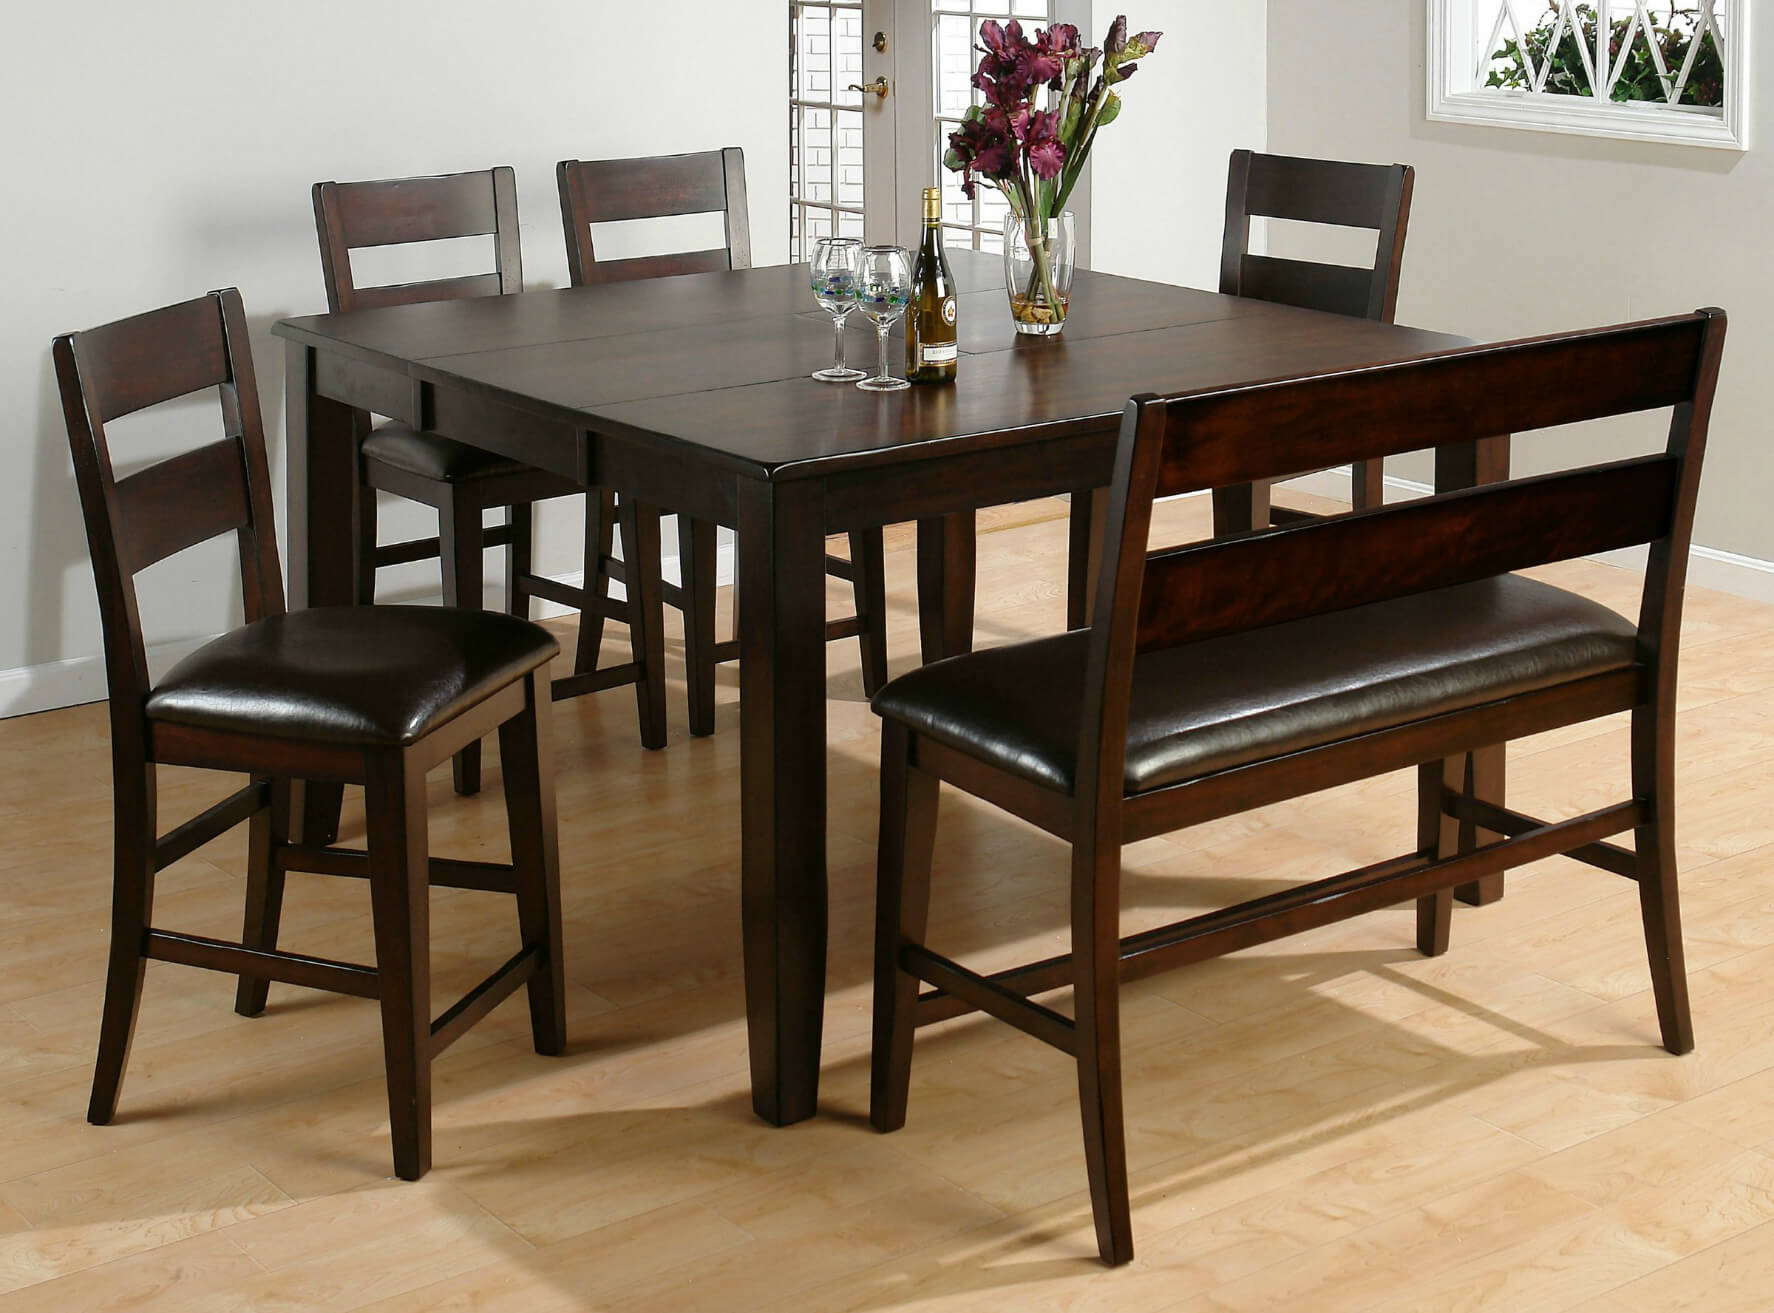 heres a counter height square dining room table with bench moreover the bench includes - Dining Room Table With Chairs And Bench